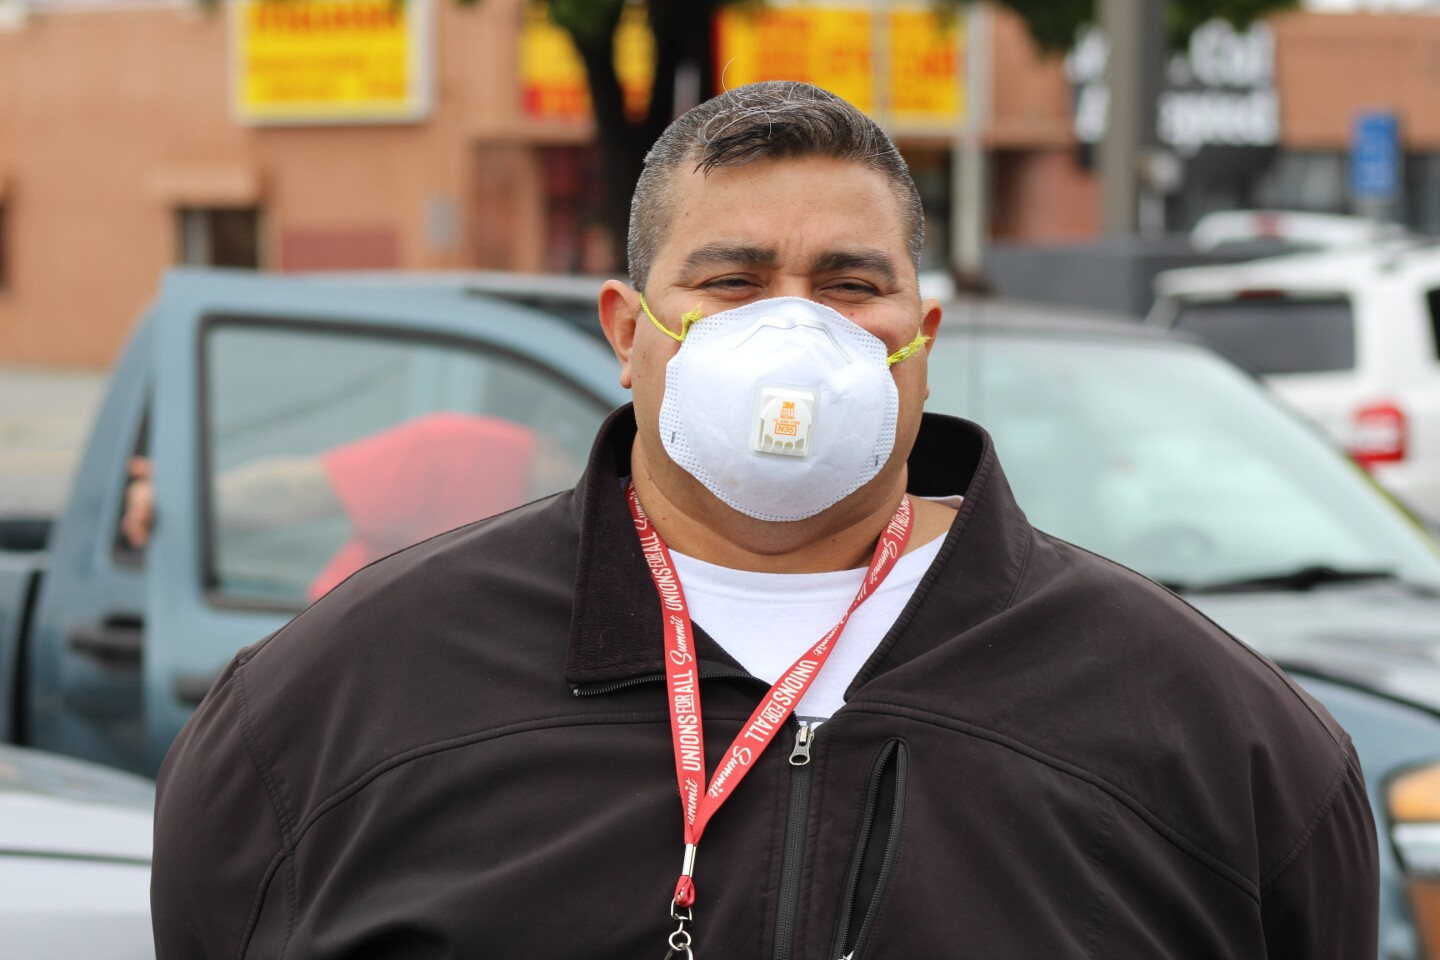 Man wearing a mask wearing a Unions for All lanyard, during protest at McDonalds on April 6, 2020 | Karen Foshay